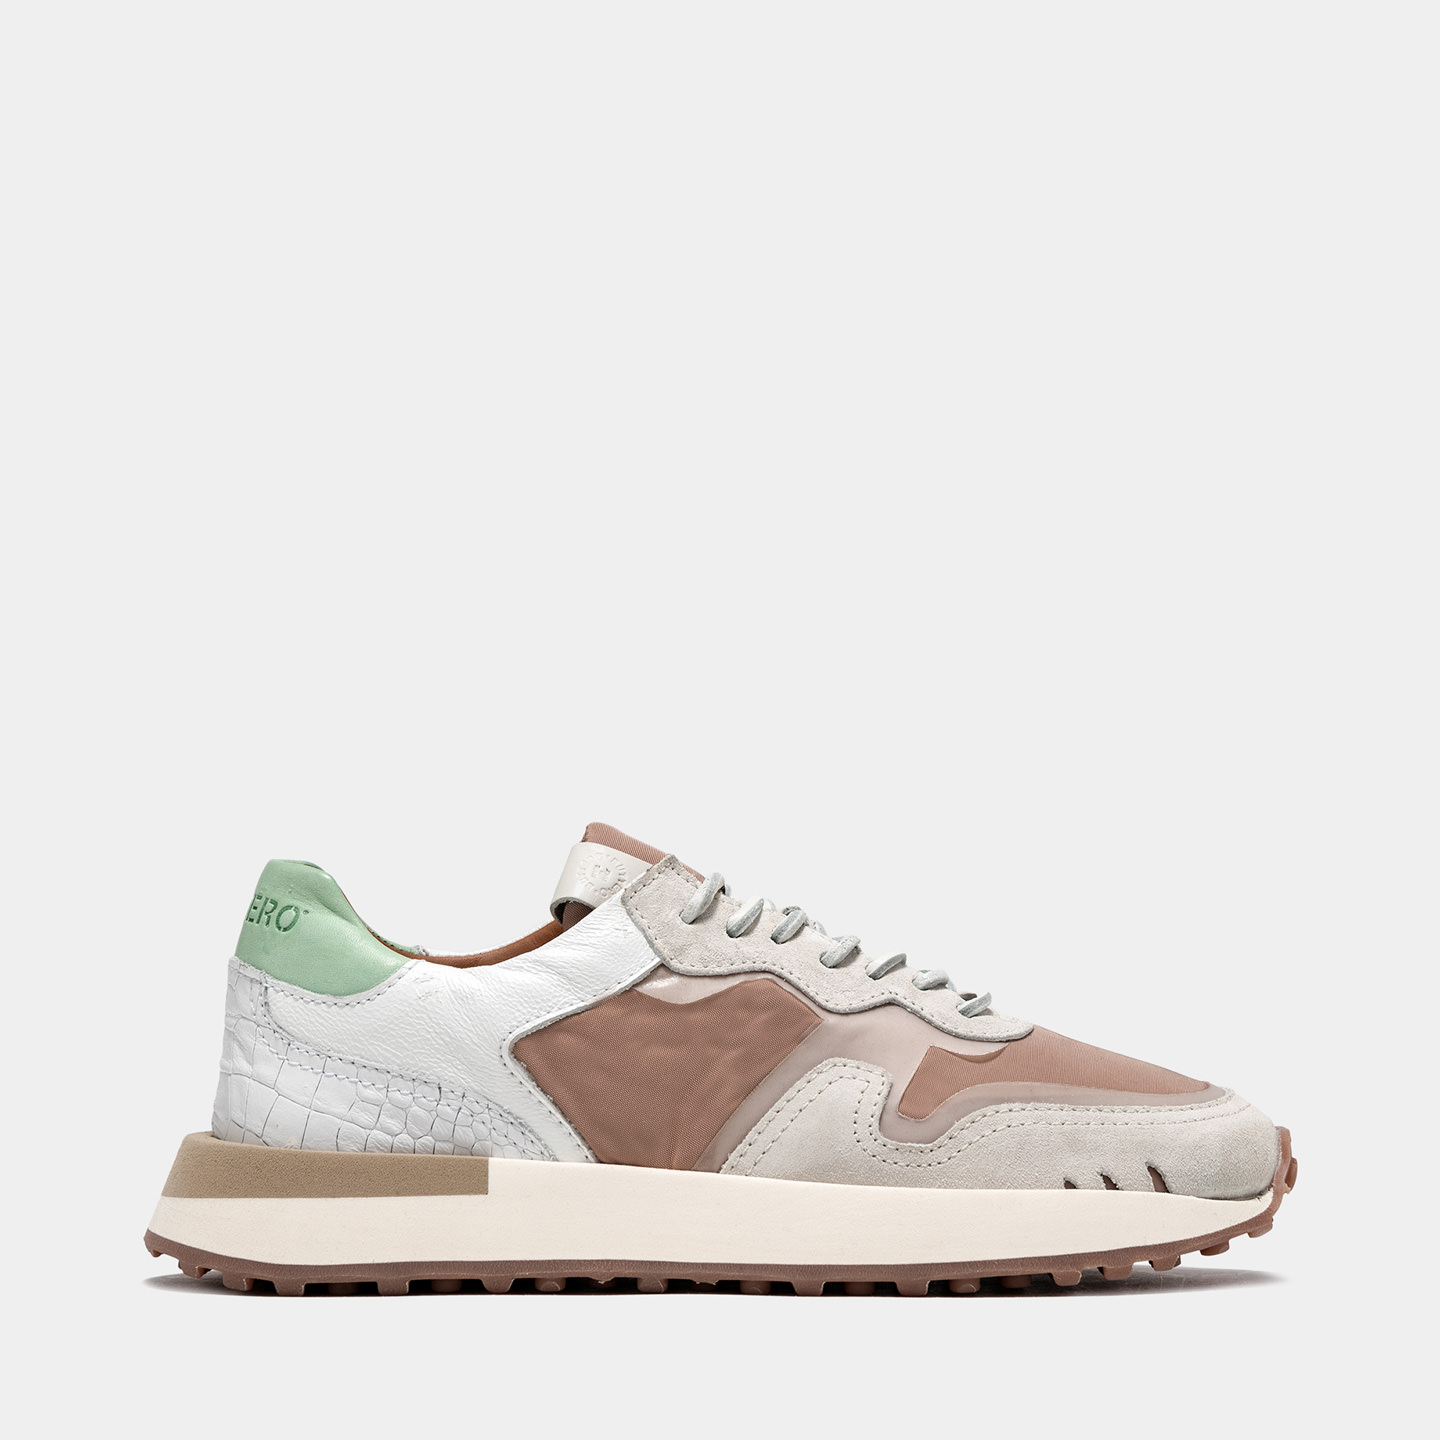 BUTTERO: FUTURA SNEAKERS IN? PINK MIXED LEATHER AND NYLON